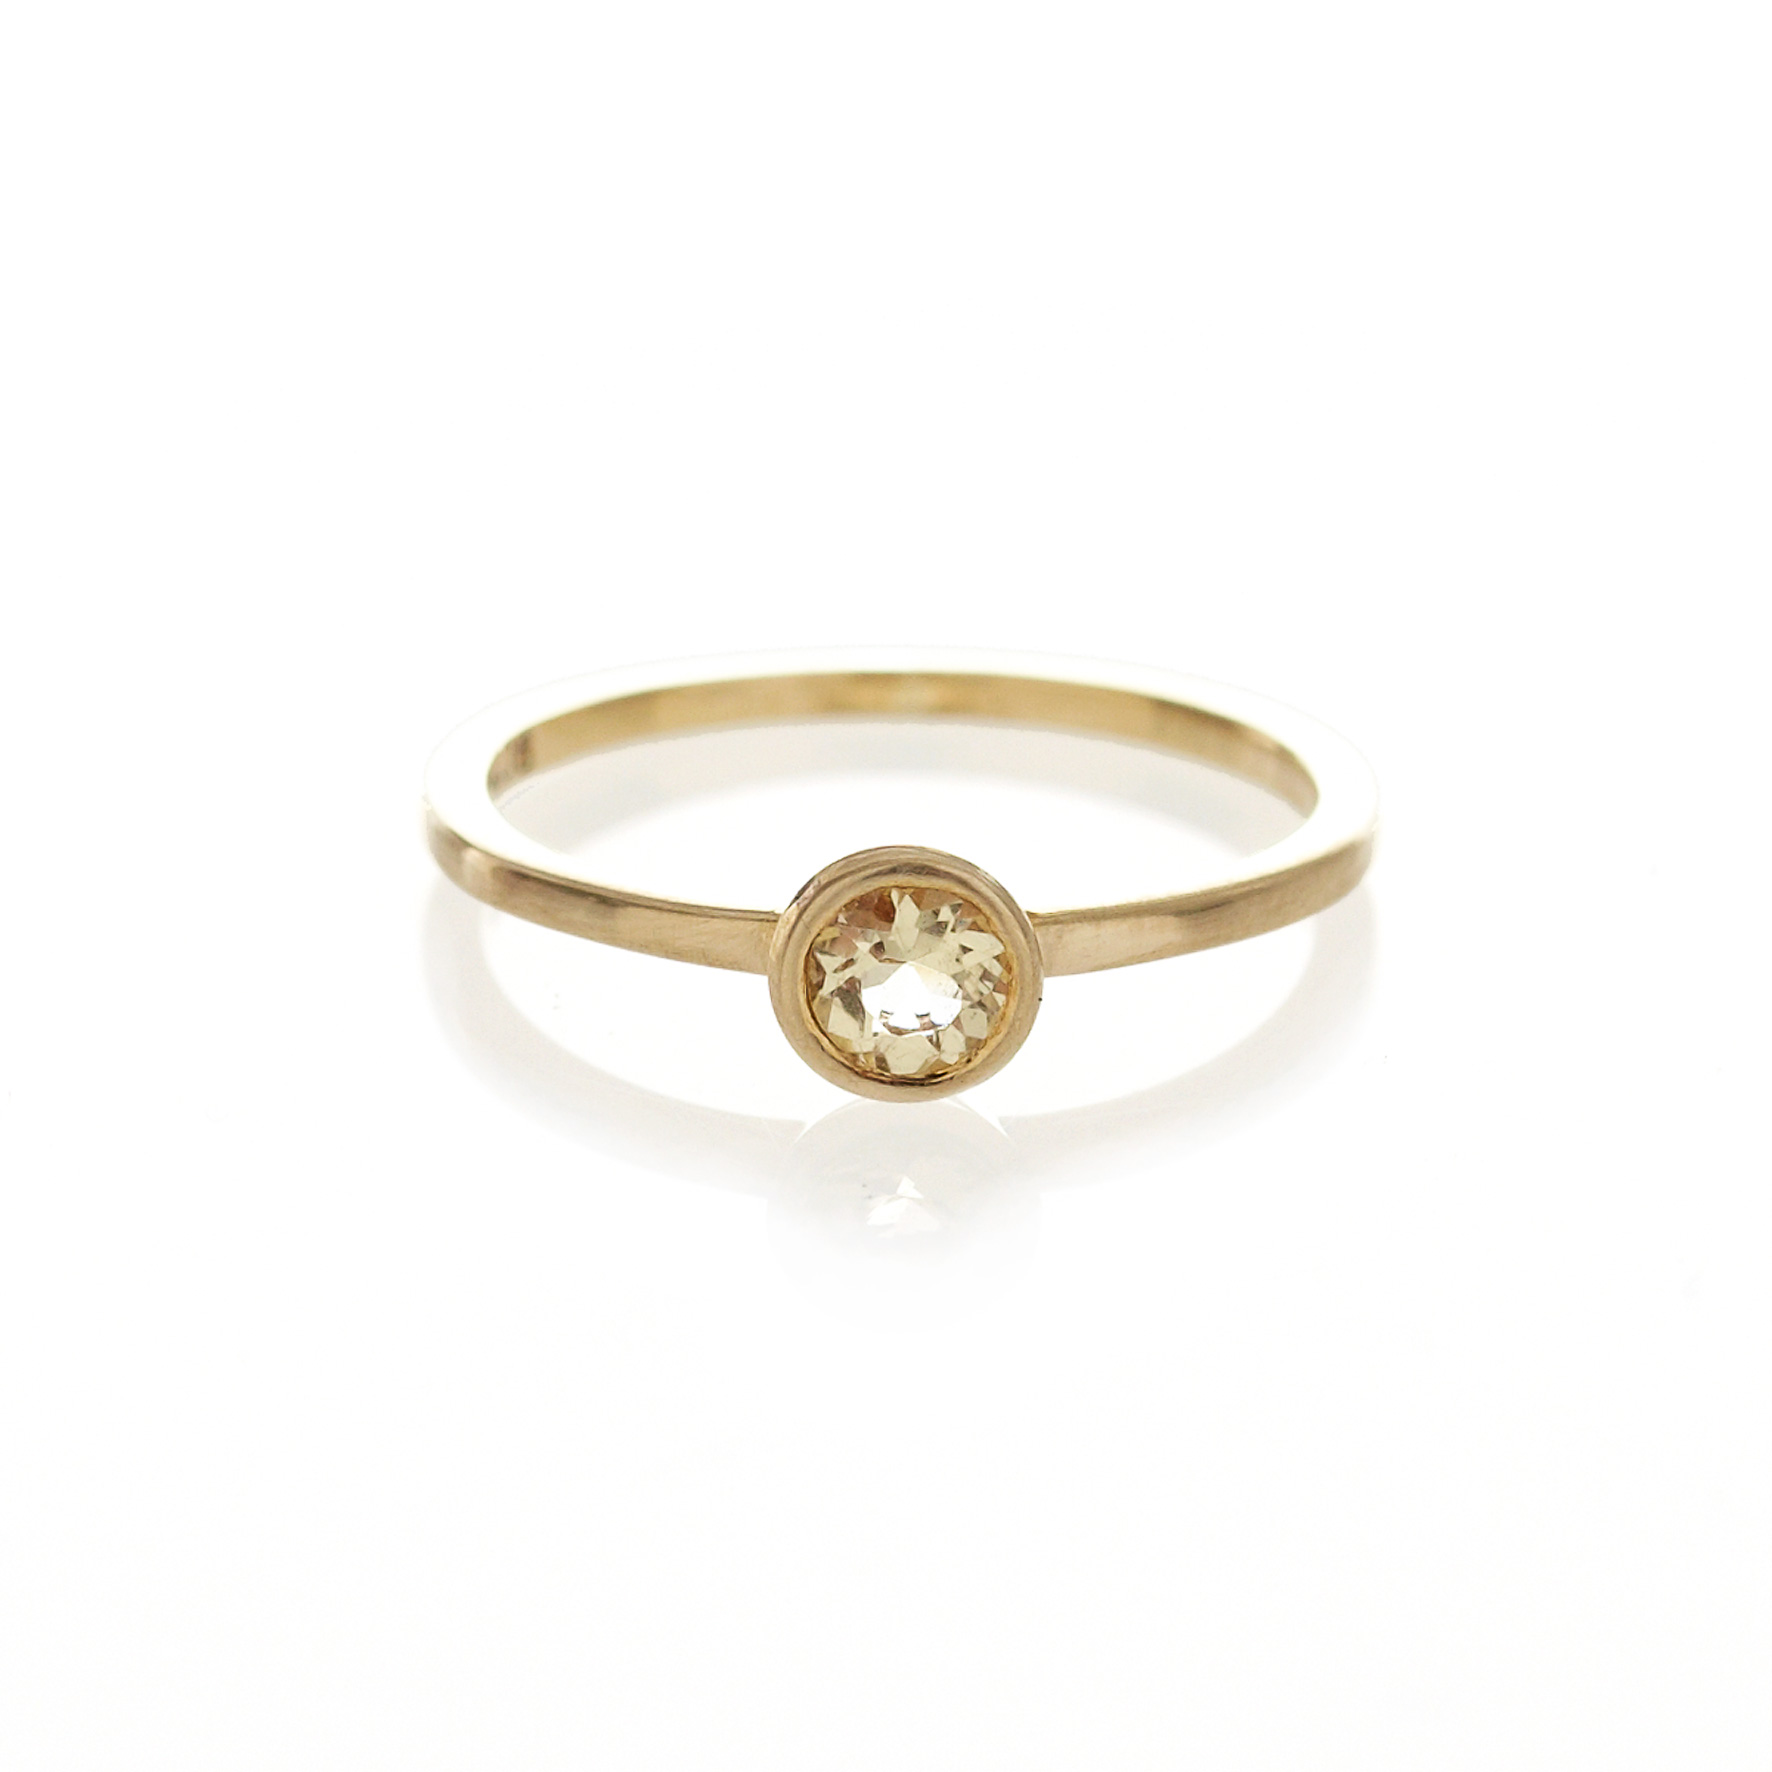 Bezel set citrine ring in 9ct yellow gold